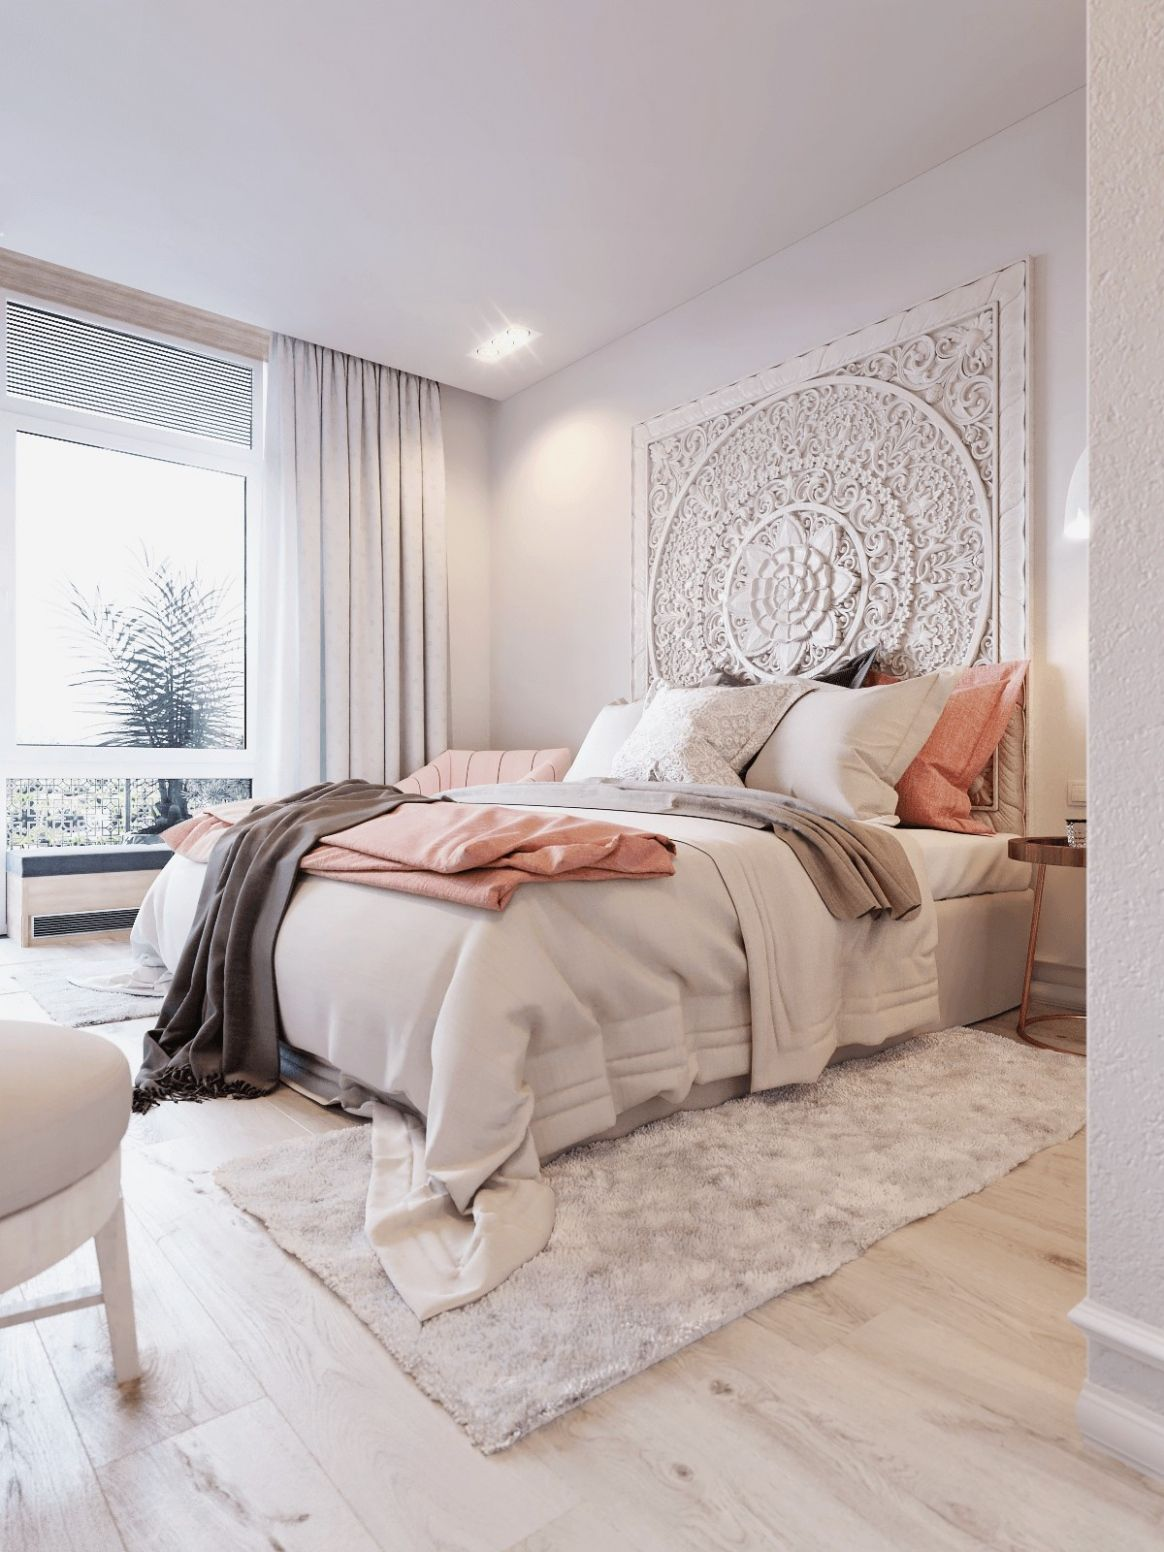 Bedroom Seating Ideas For Small Spaces Best Of Small Bedroom Ideas Elegant Furniture Price 0d Archives Living Room Home Bedroom Bedroom Decor Dream Bedroom